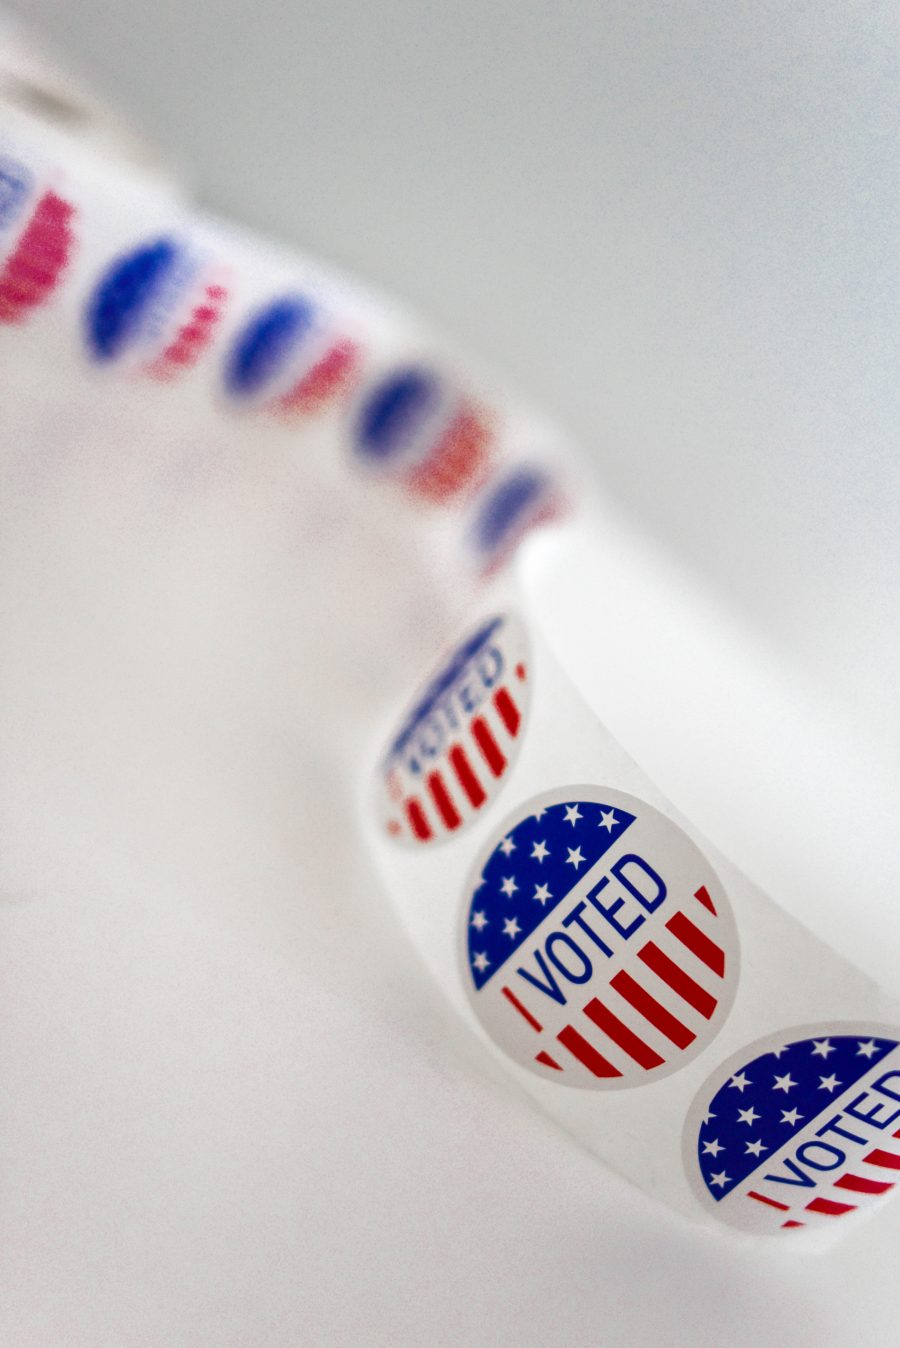 4 Things Marketing Professionals Should Know About Political Campaigning